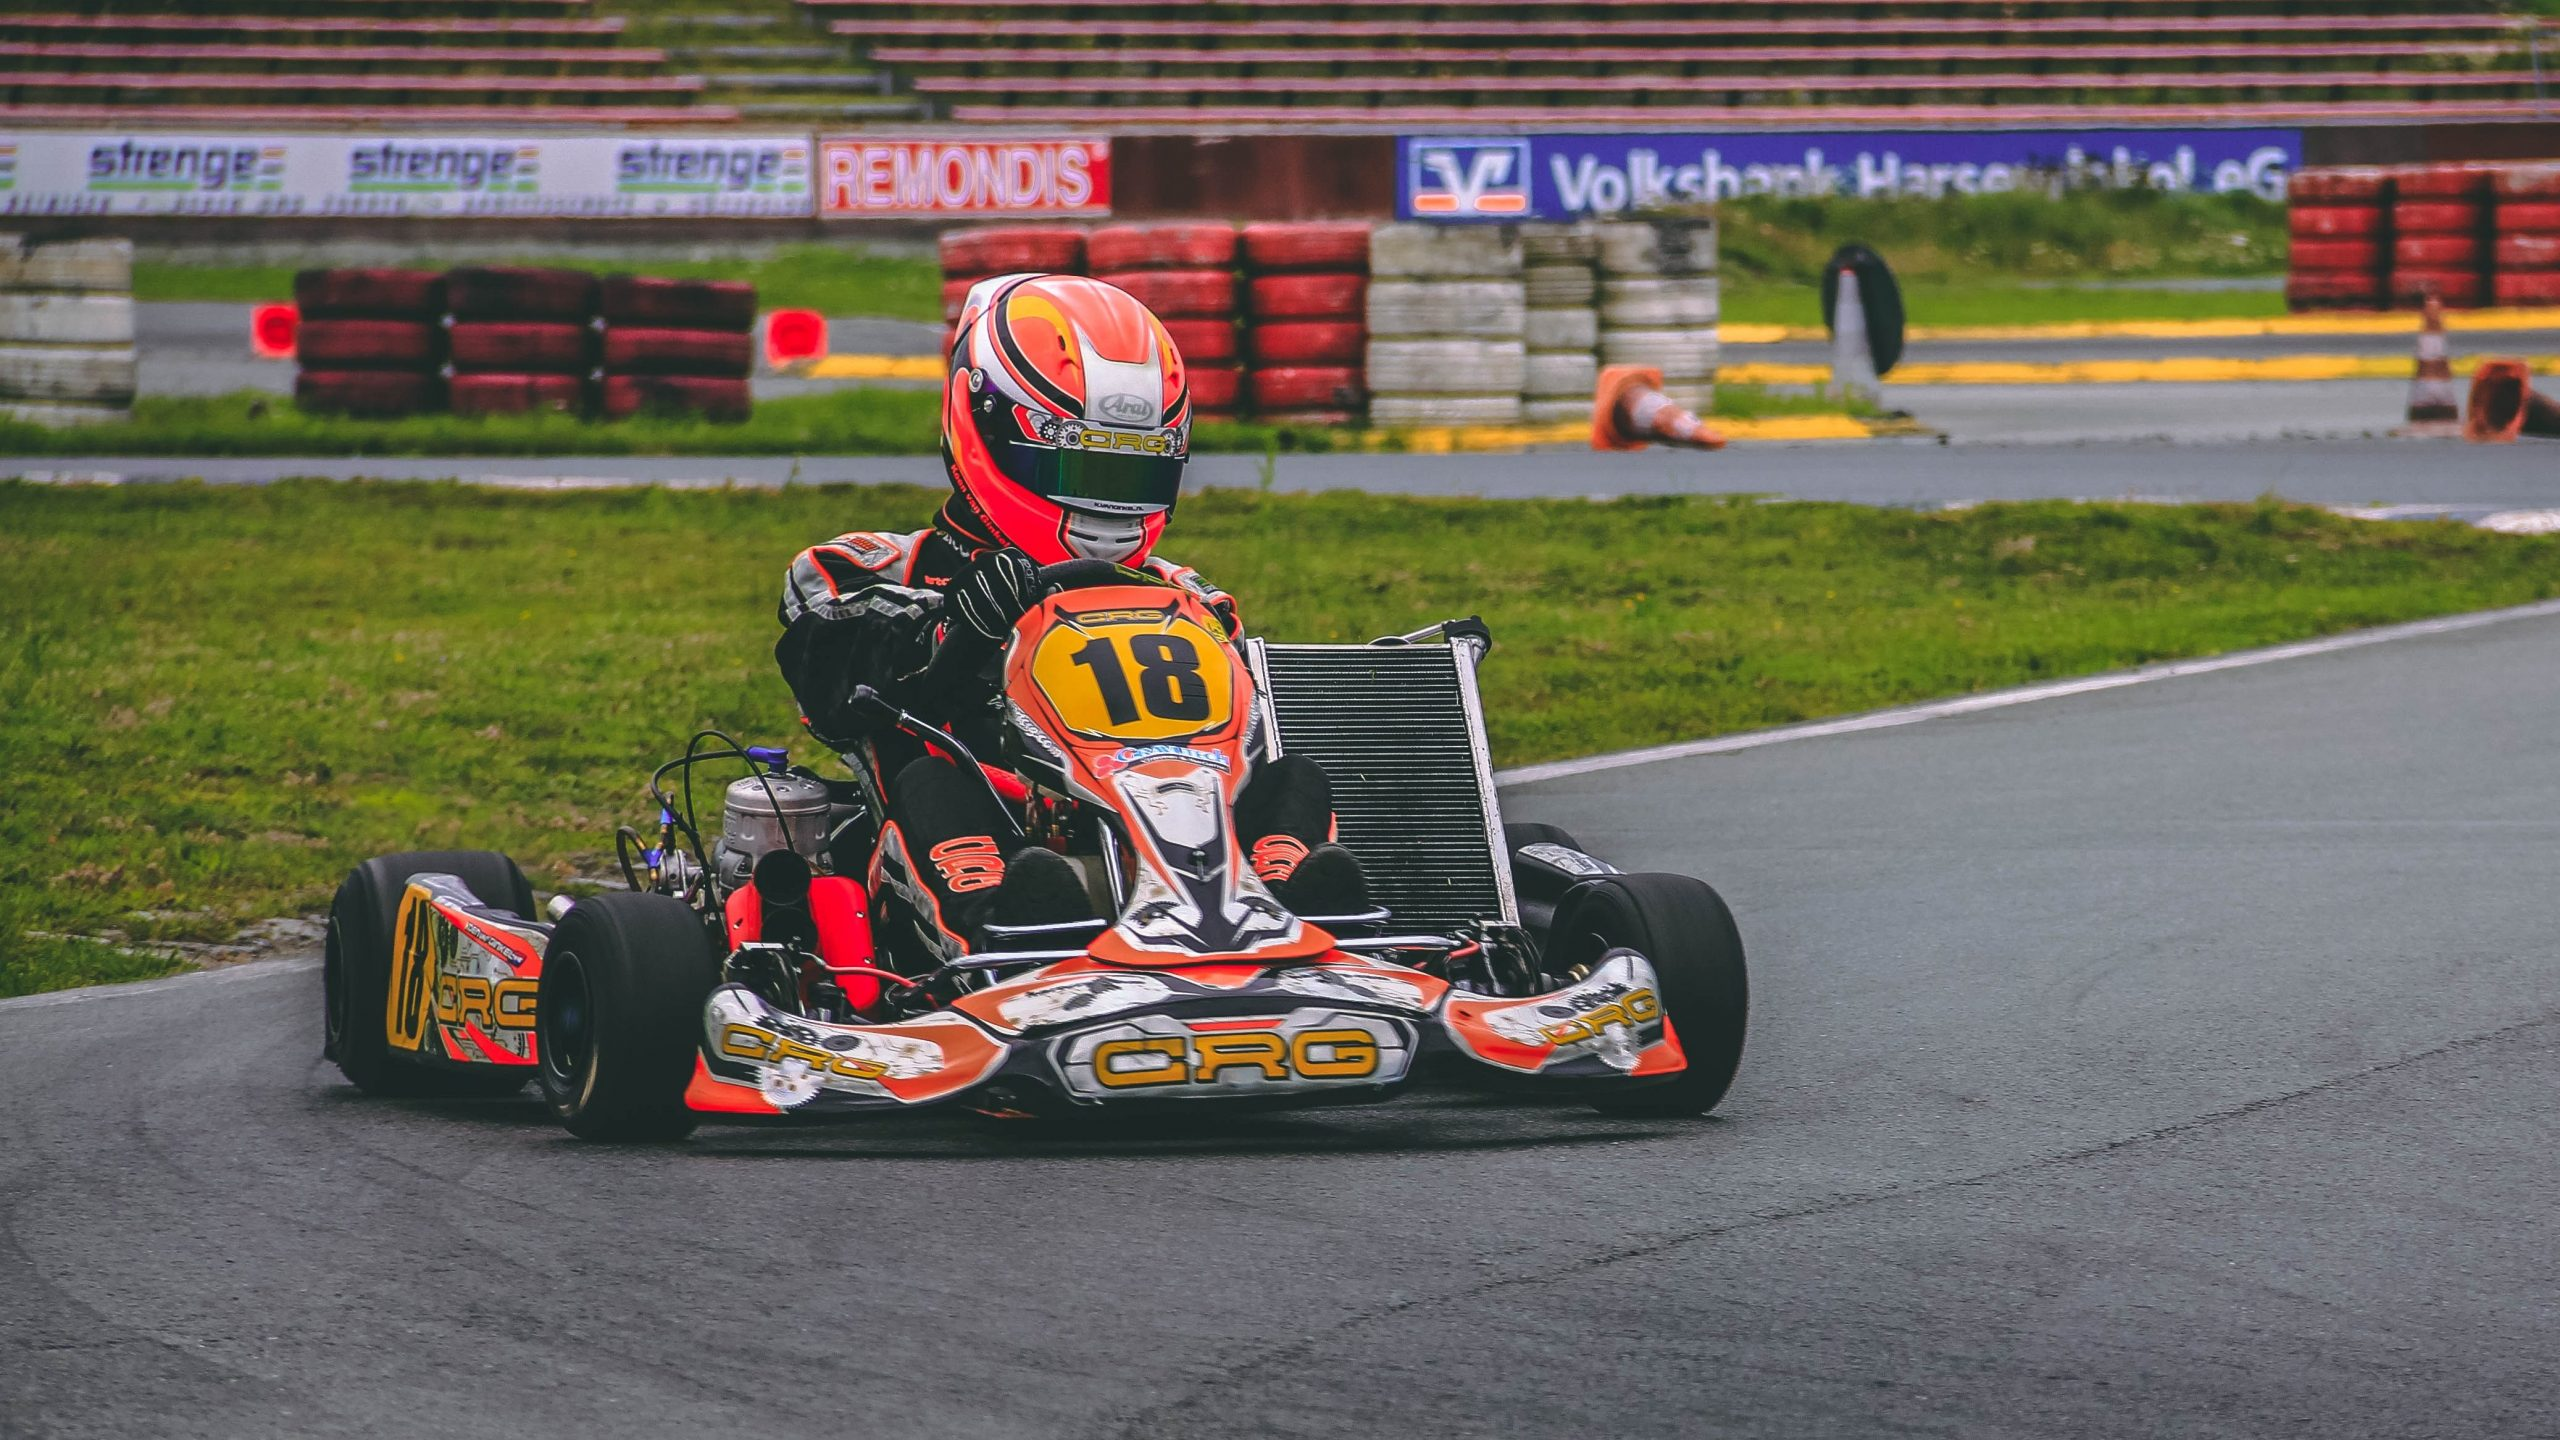 CRG kart outdoor